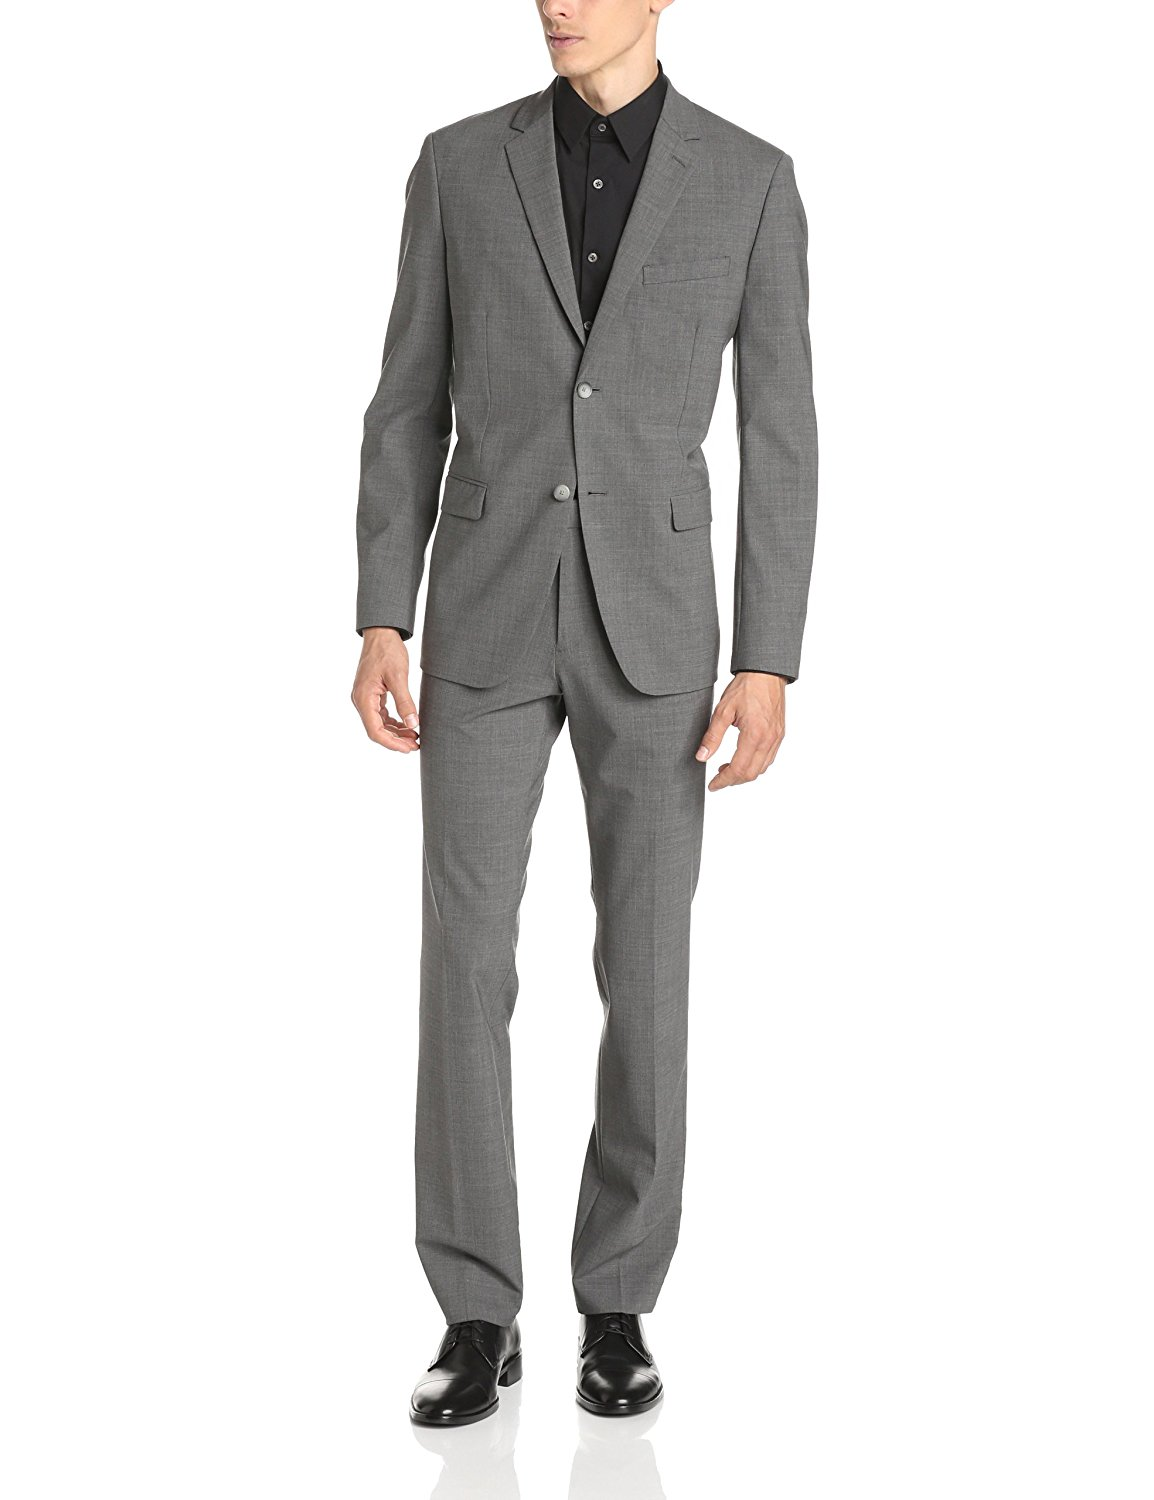 be5429aad6f Cheap Theory Suit, find Theory Suit deals on line at Alibaba.com